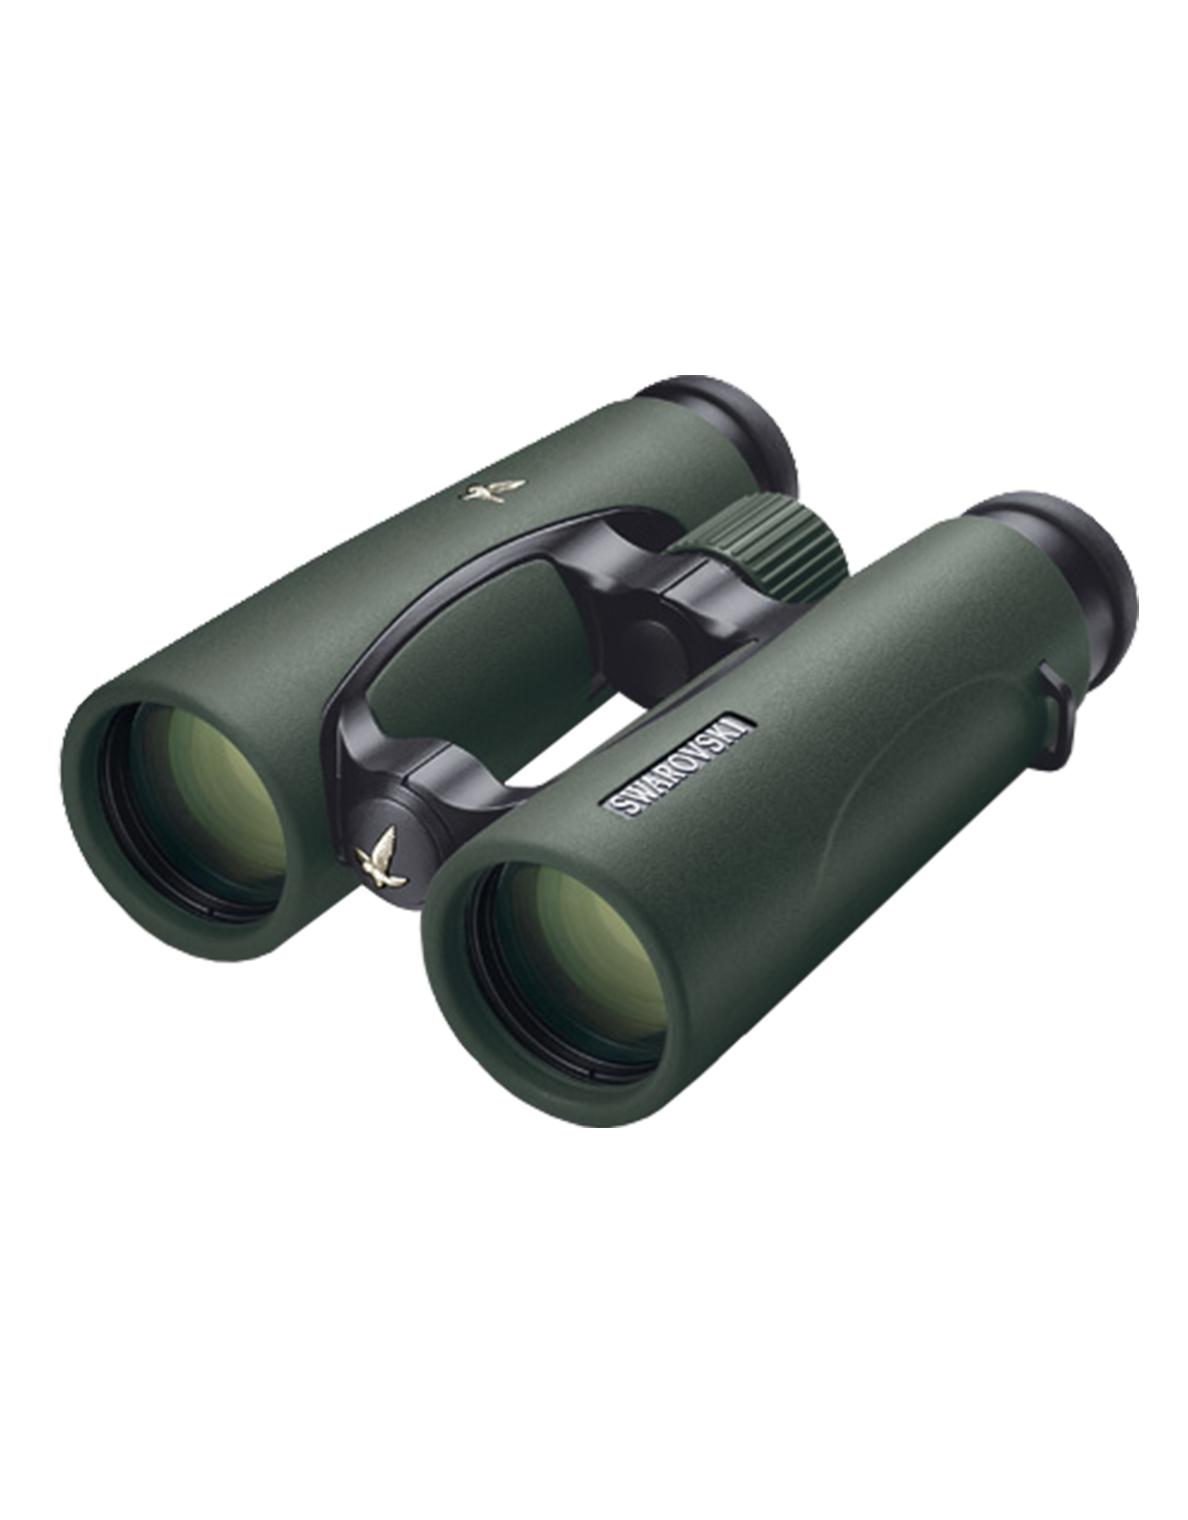 dating swarovski binoculars Binoculars antique & collectable: looking for binoculars of all types are wanted by collectors those made in the eighteenth and nineteenth centuries are favored by serious collectors.